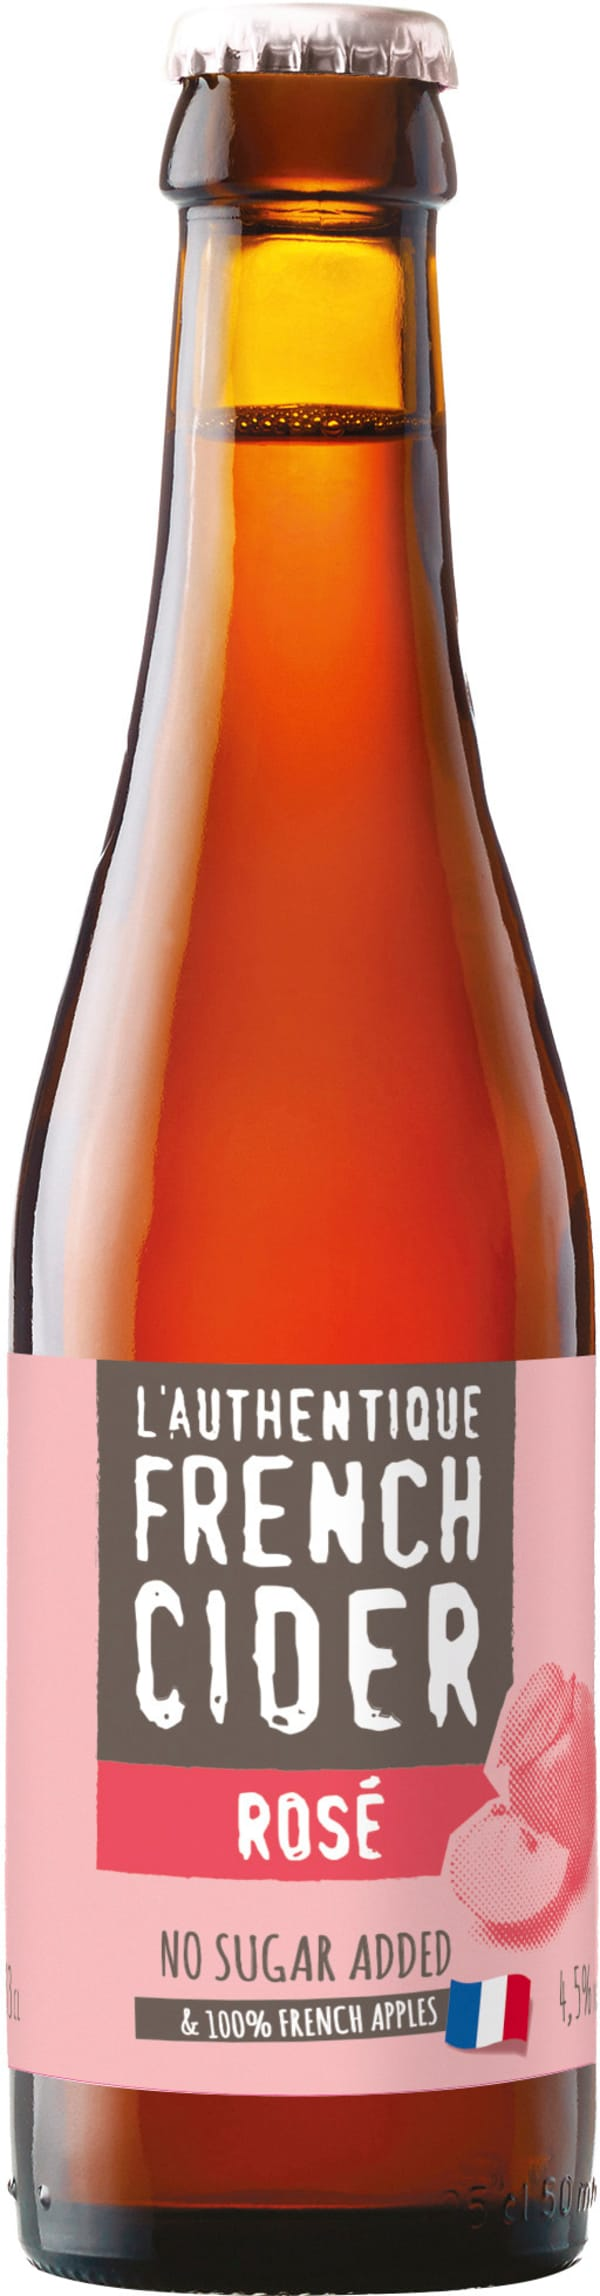 Val de France L'Authentique French Cider Rosé